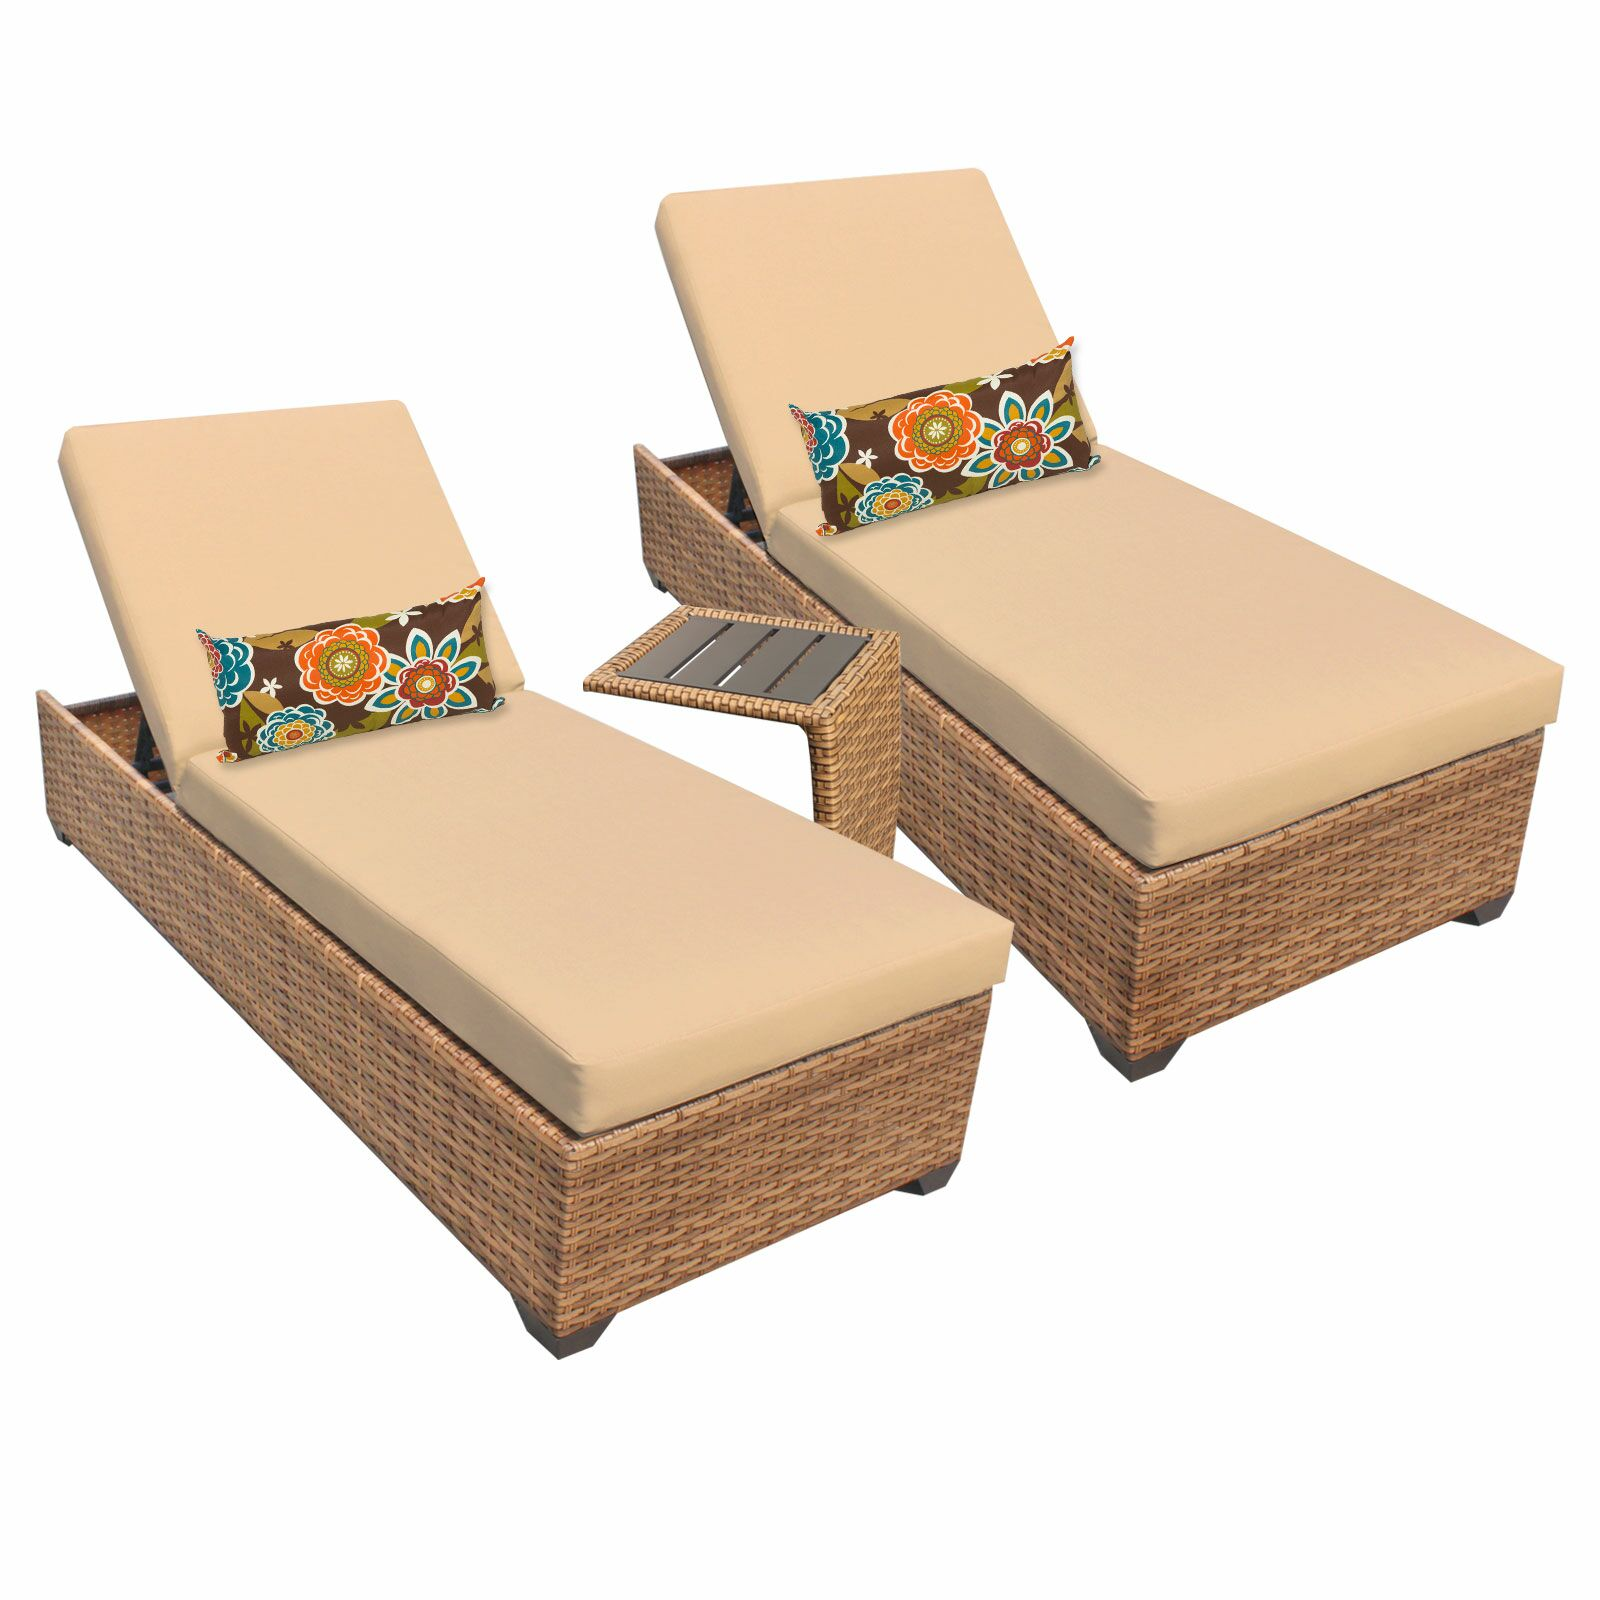 Asellus 3 Piece Chaise Lounge Set with Cushion Color: Sesame